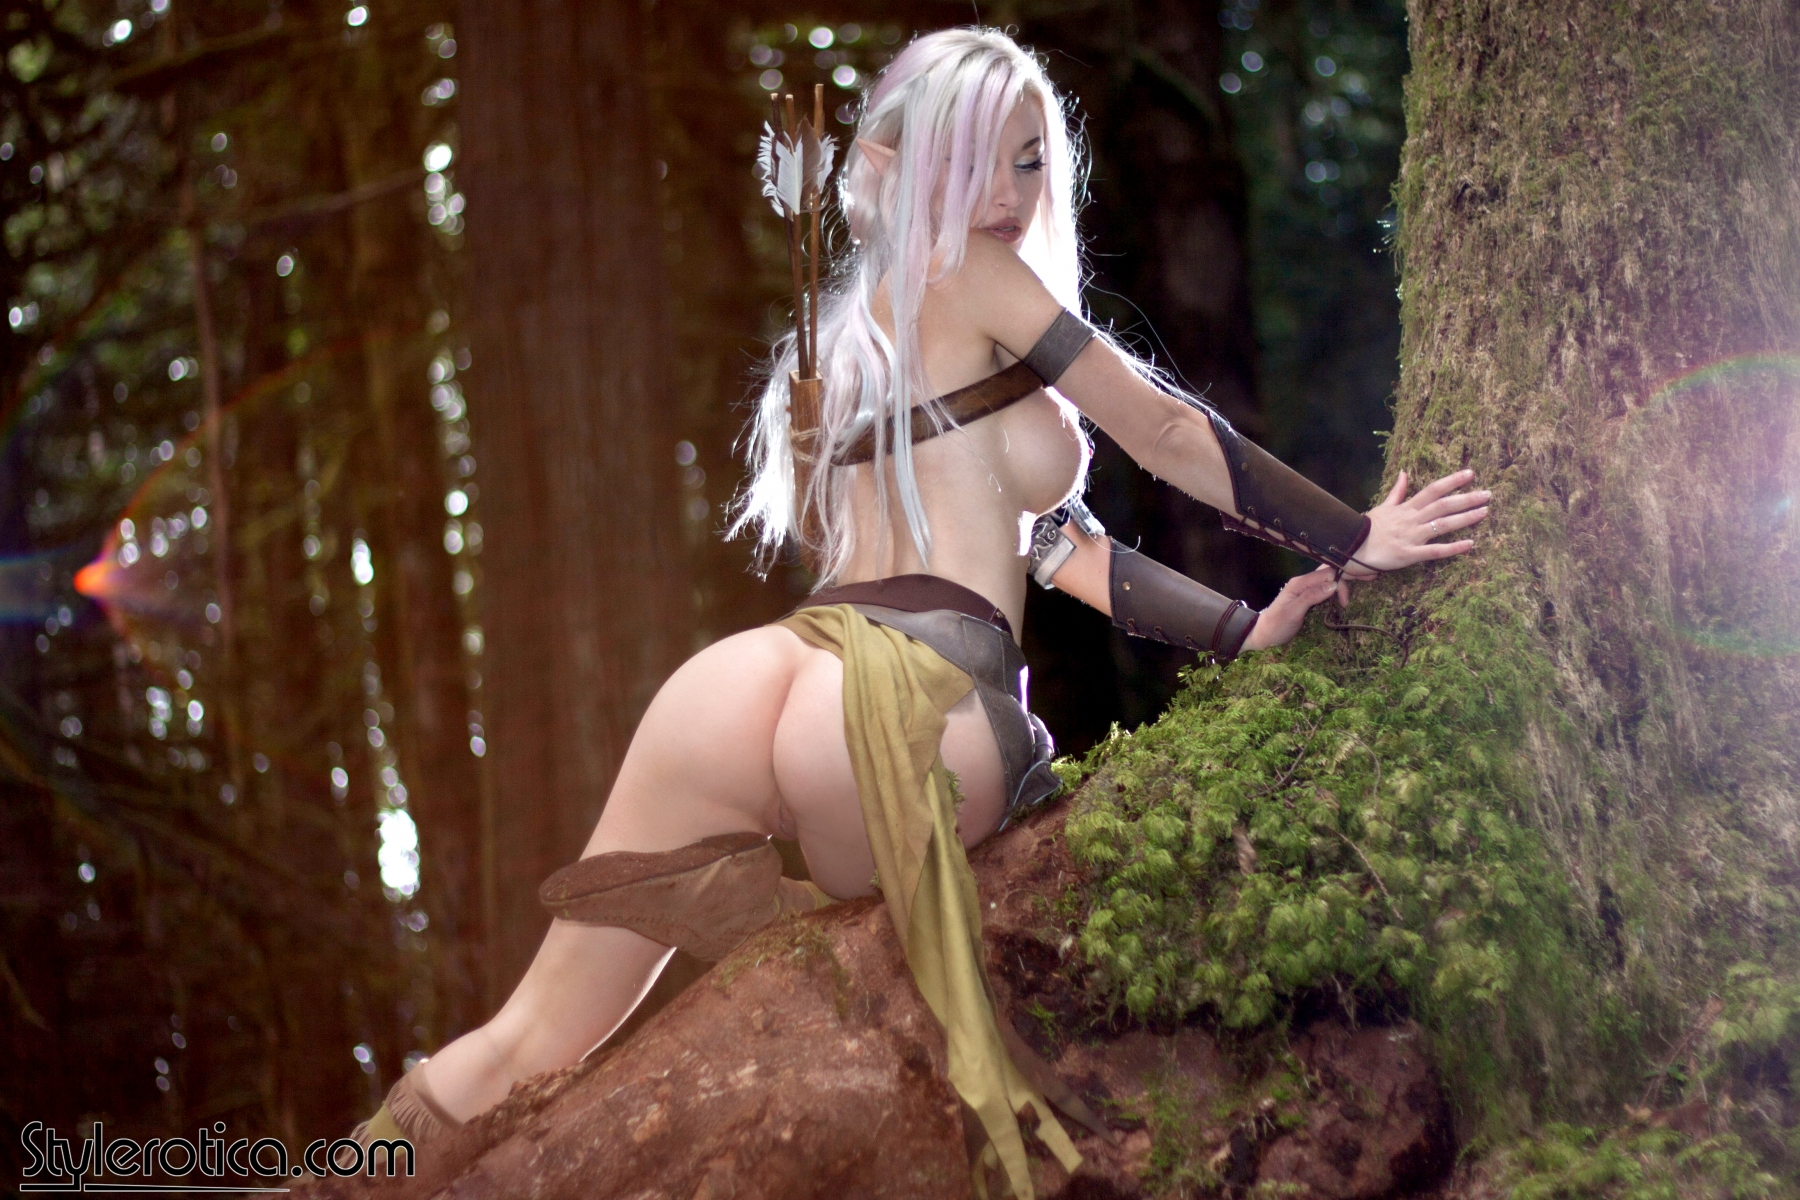 Sexy female elves cosplay sex erotic image